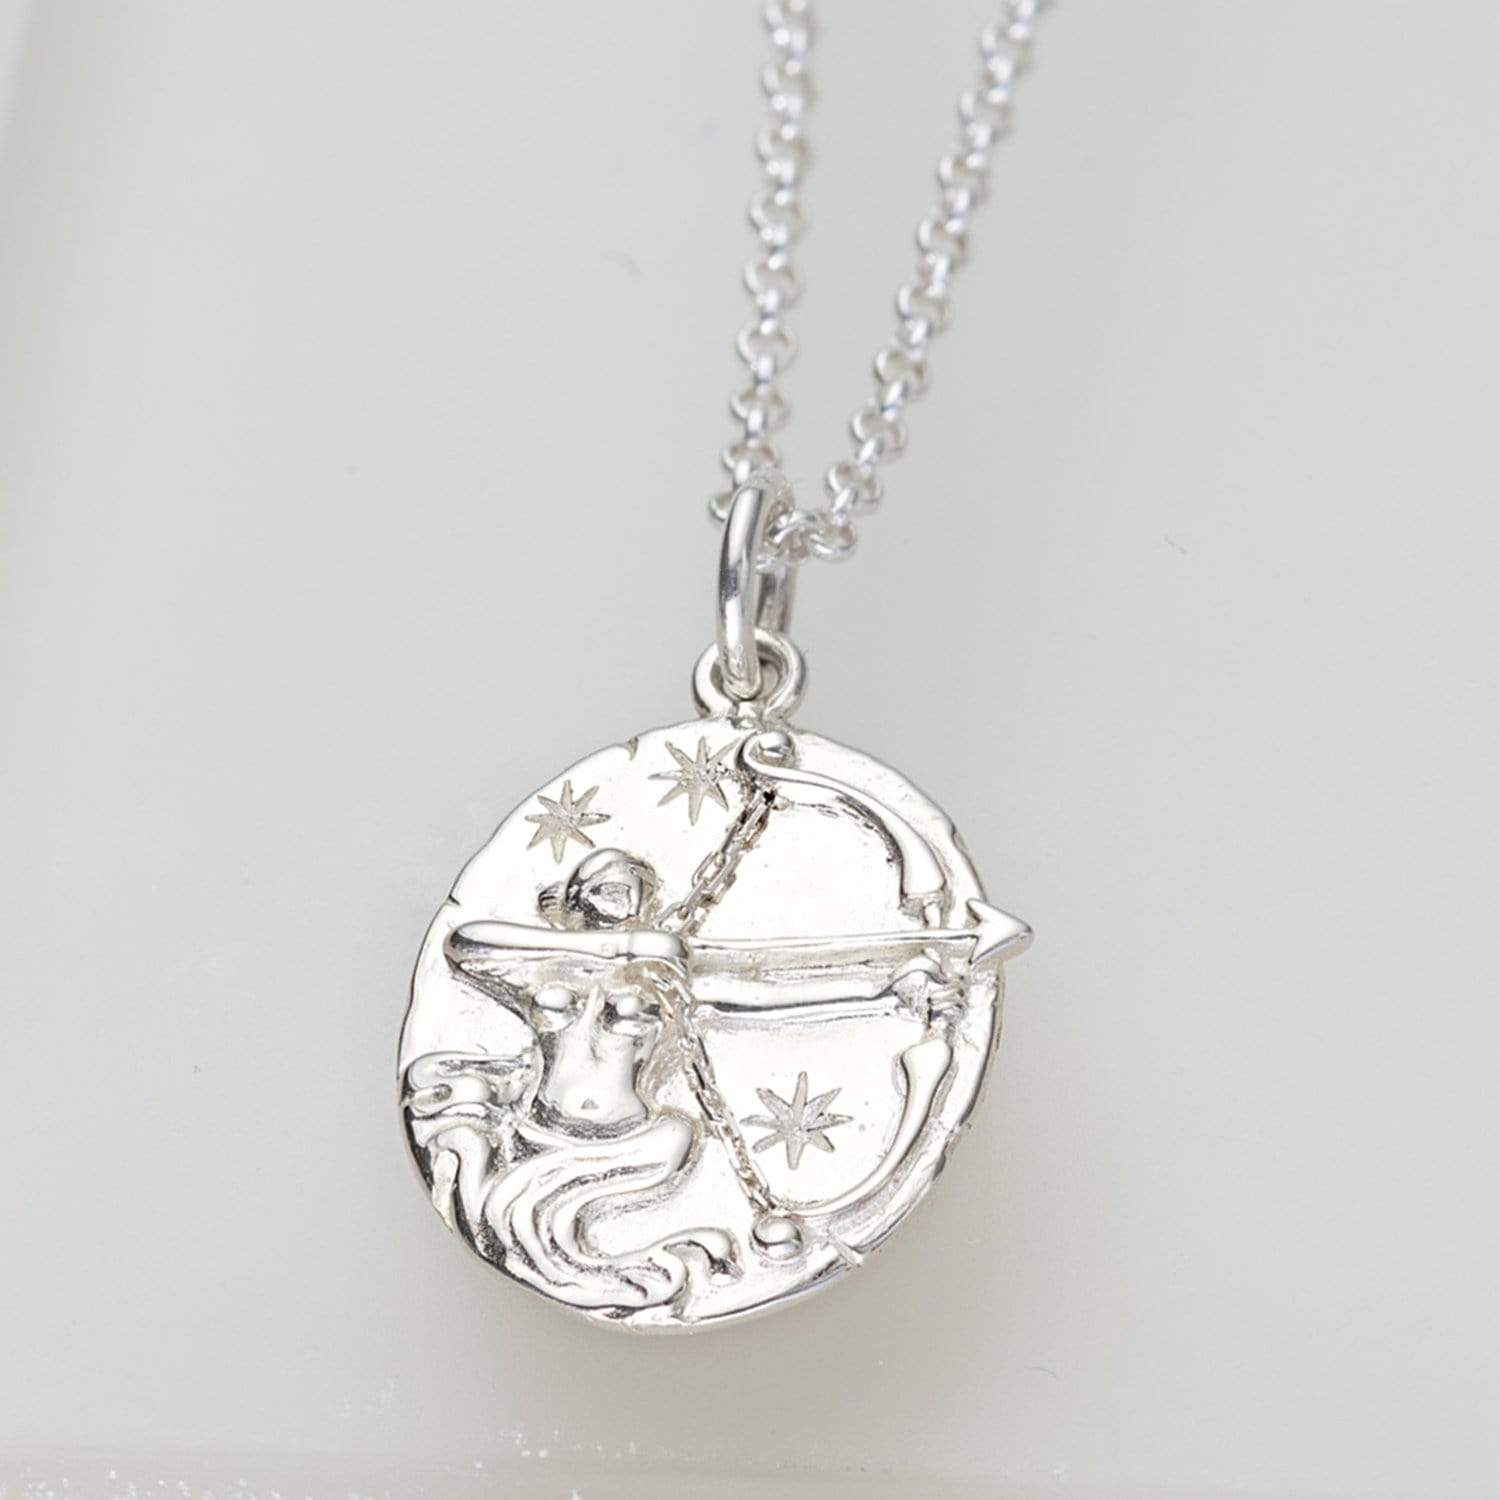 Personalised Silver Sagittarius Zodiac Necklace - Lily Charmed